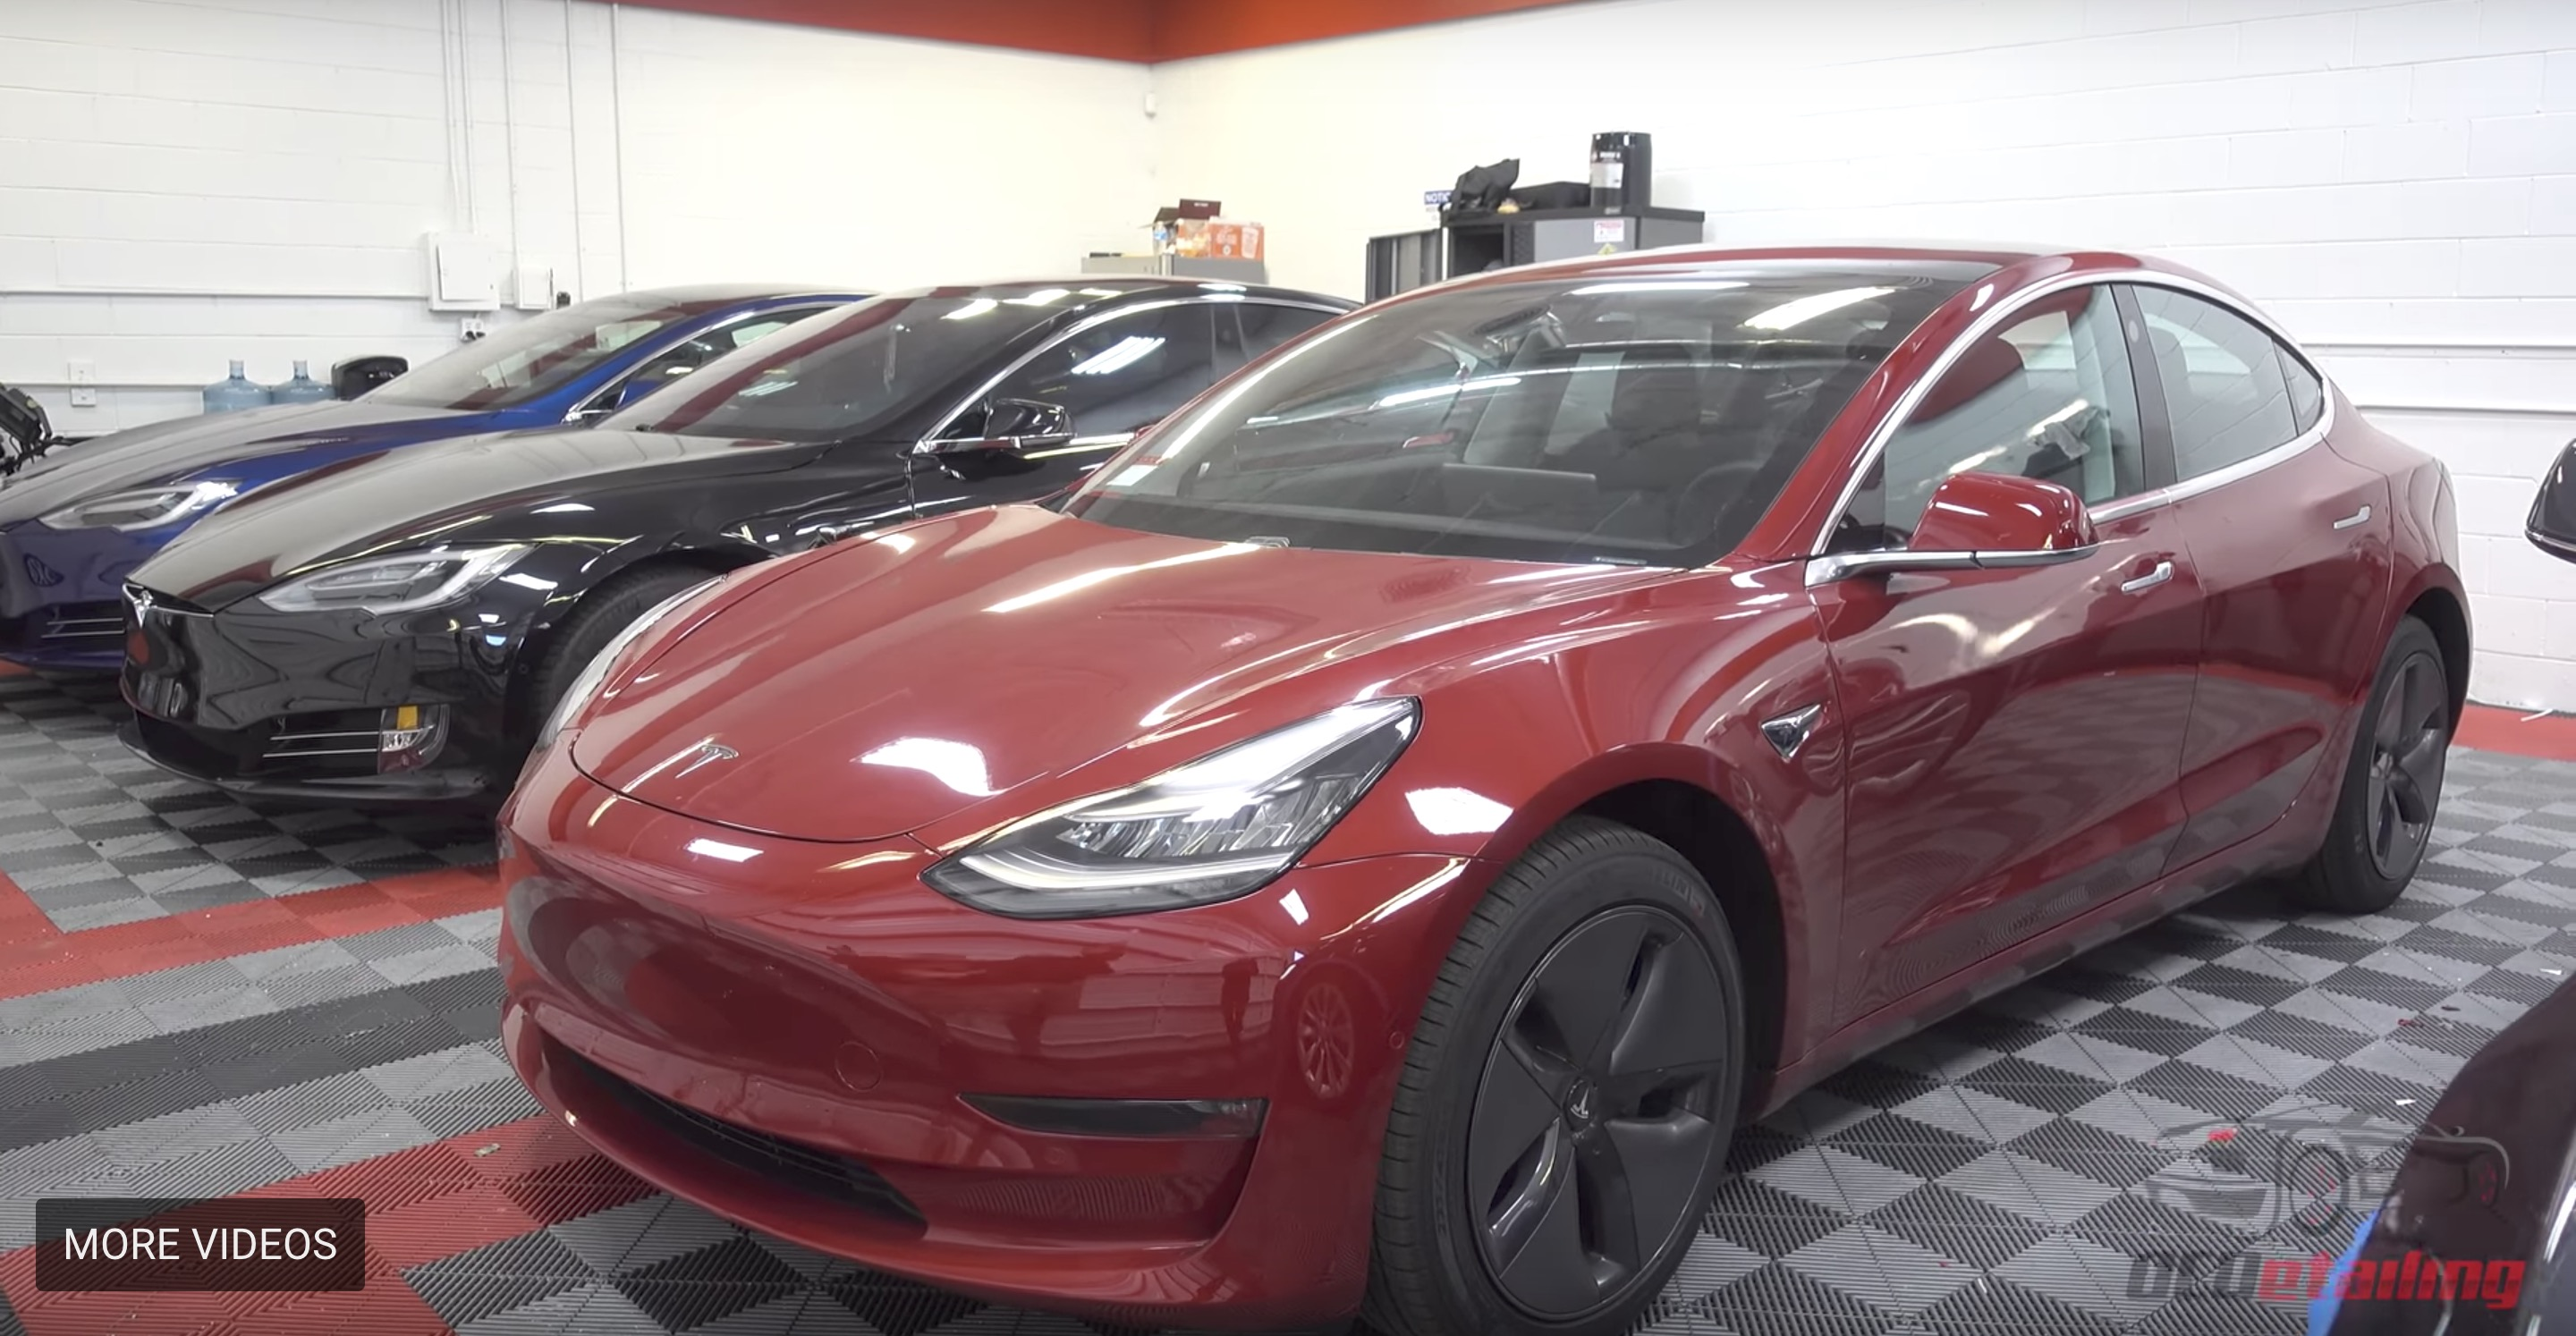 Tesla Model 3: close look at lesser-known features with new production units